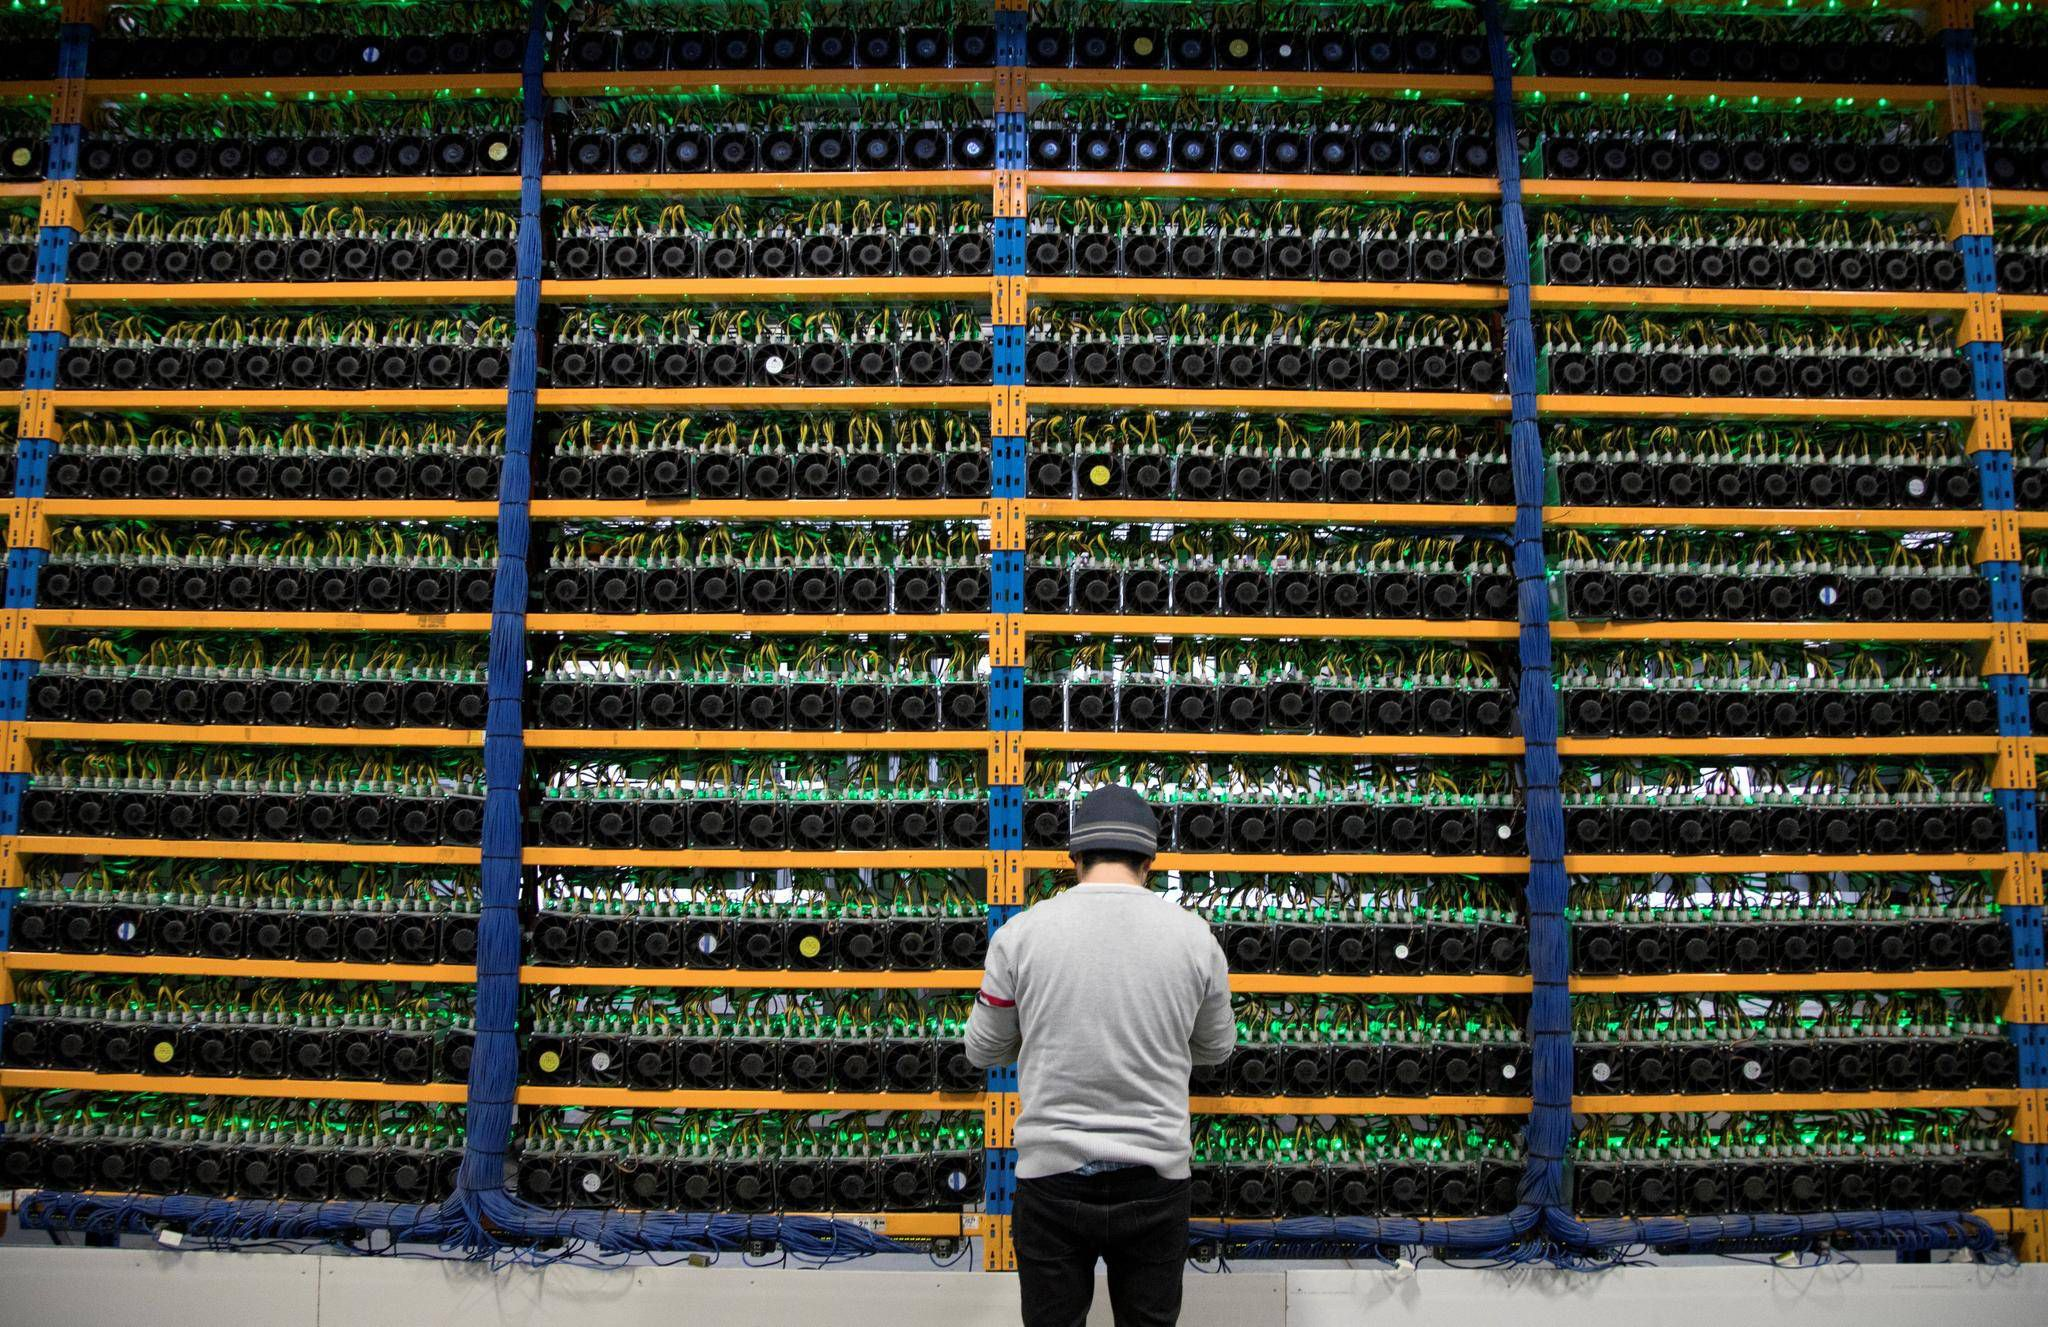 I Want To Be A Bitcoin Miner What Will My Salary